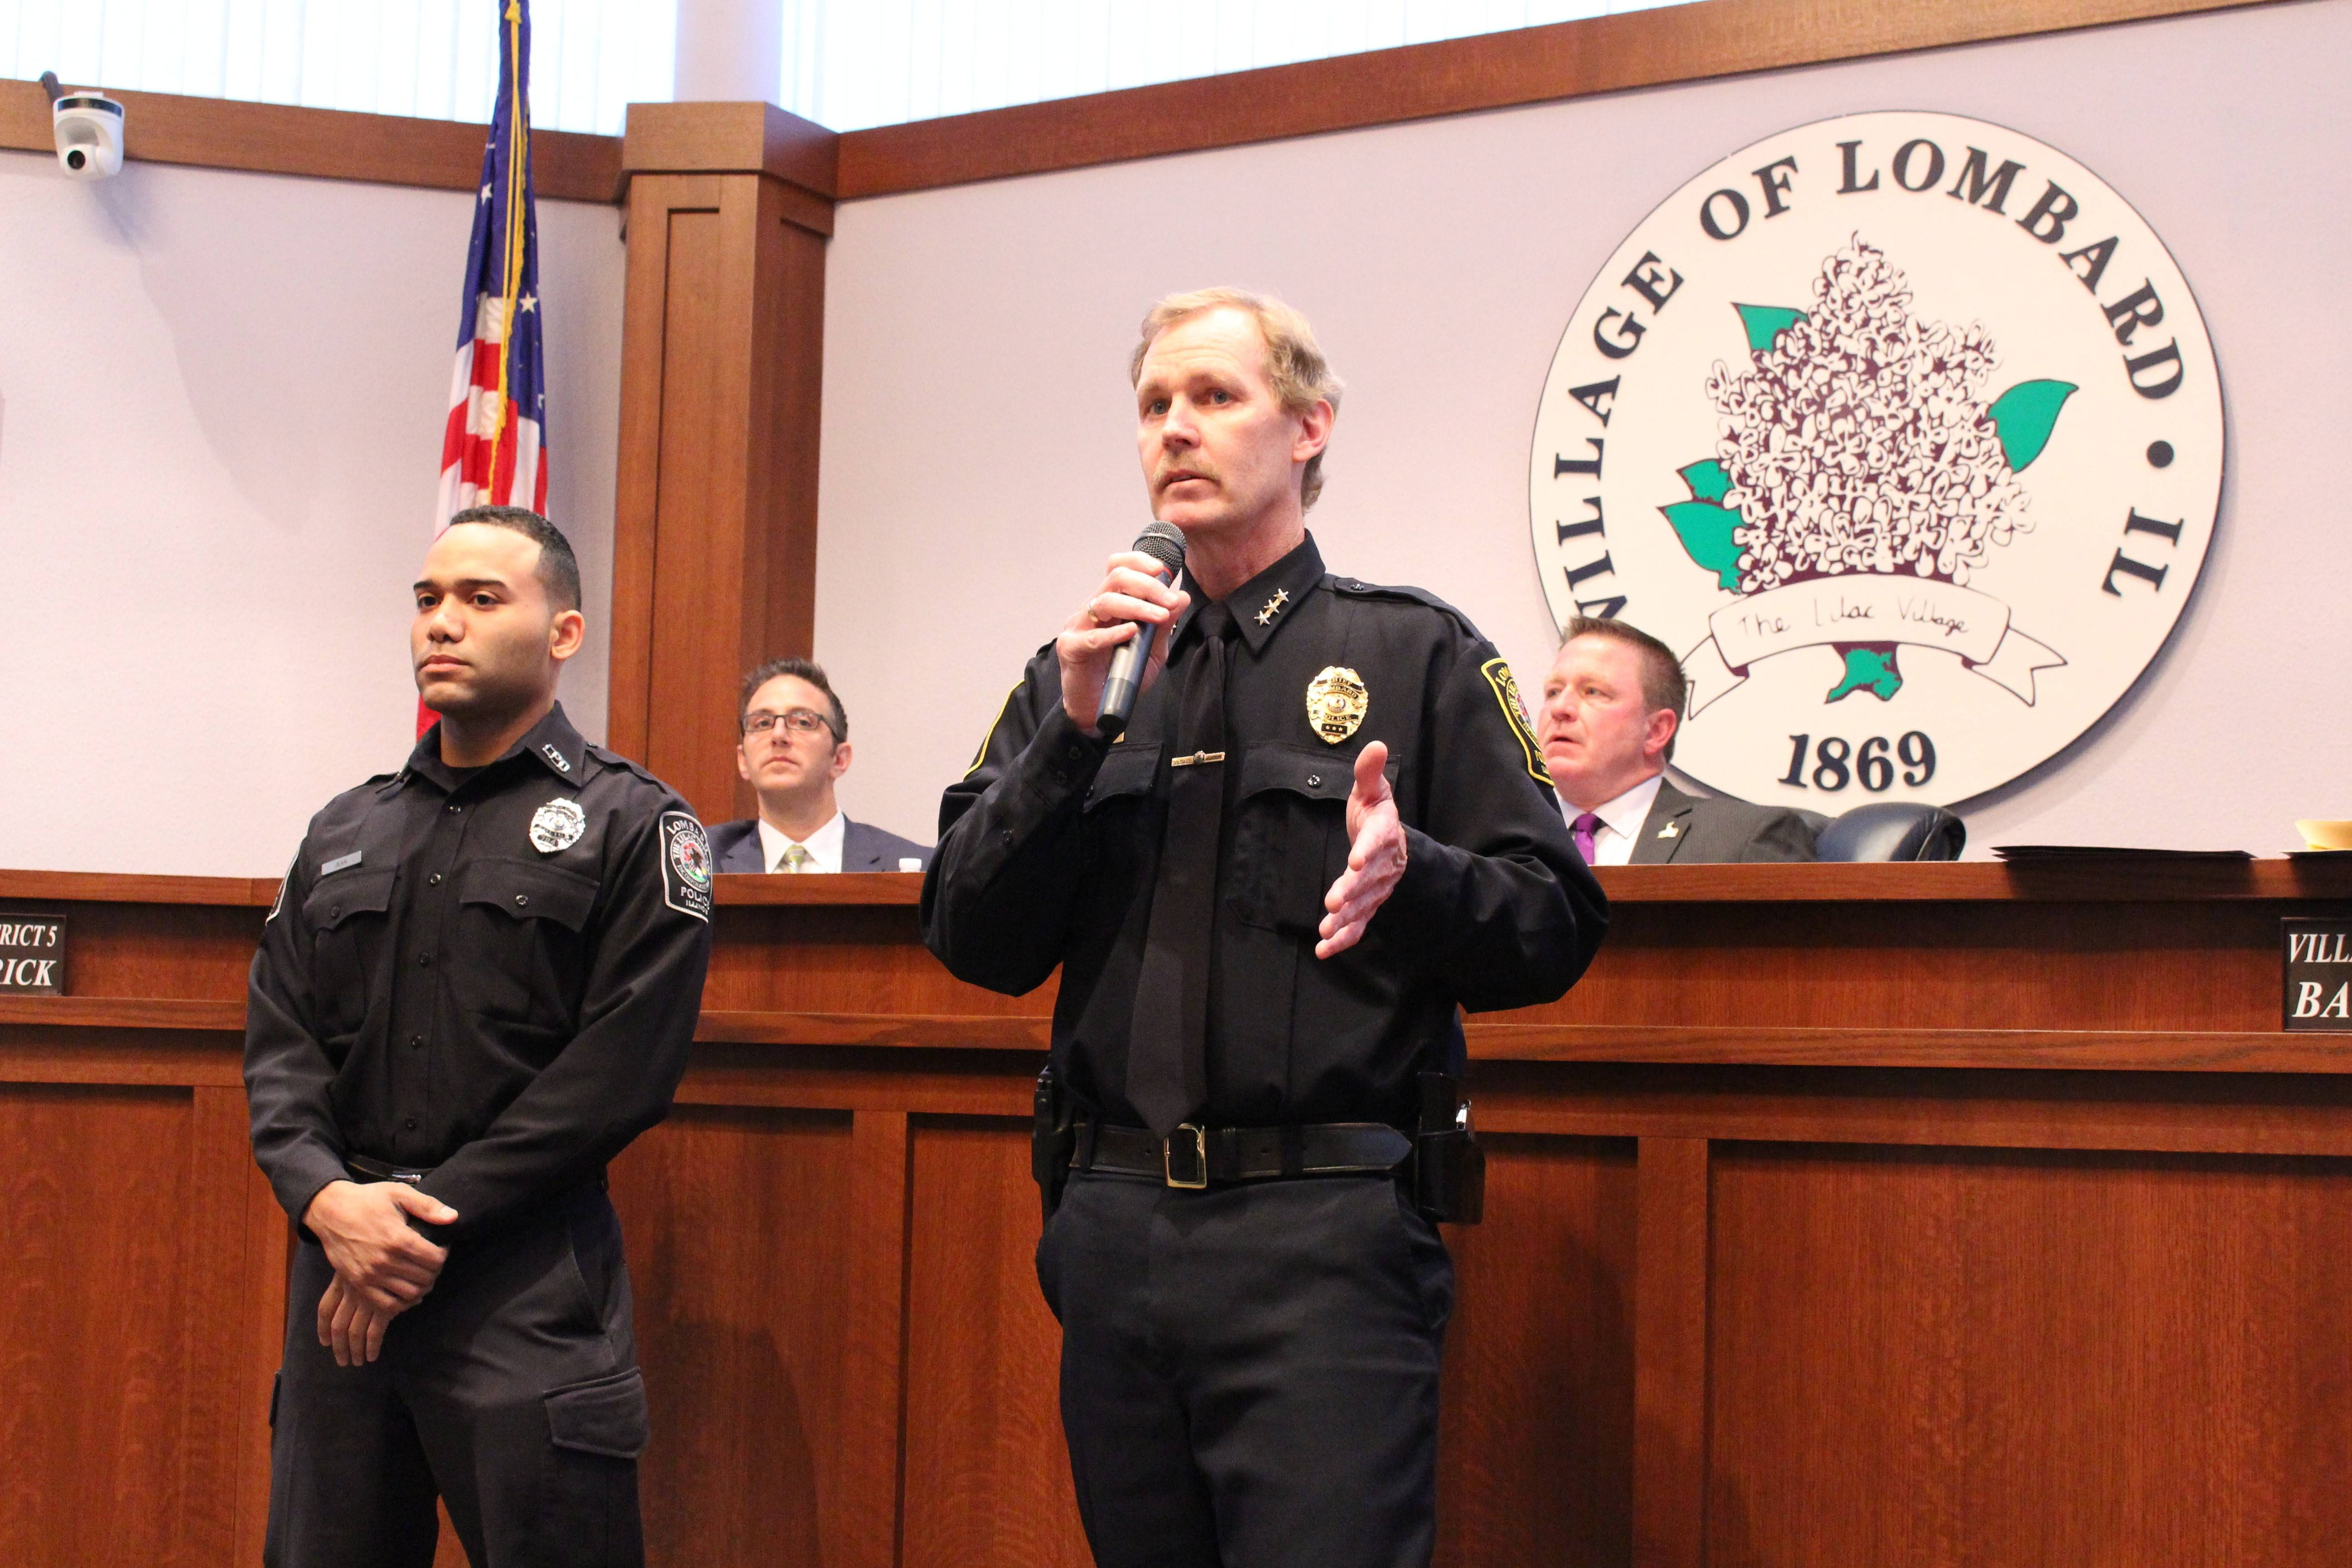 Lombard police Chief Raymond Byrne, right, presents the Award of Valor to officer Scott Jean.